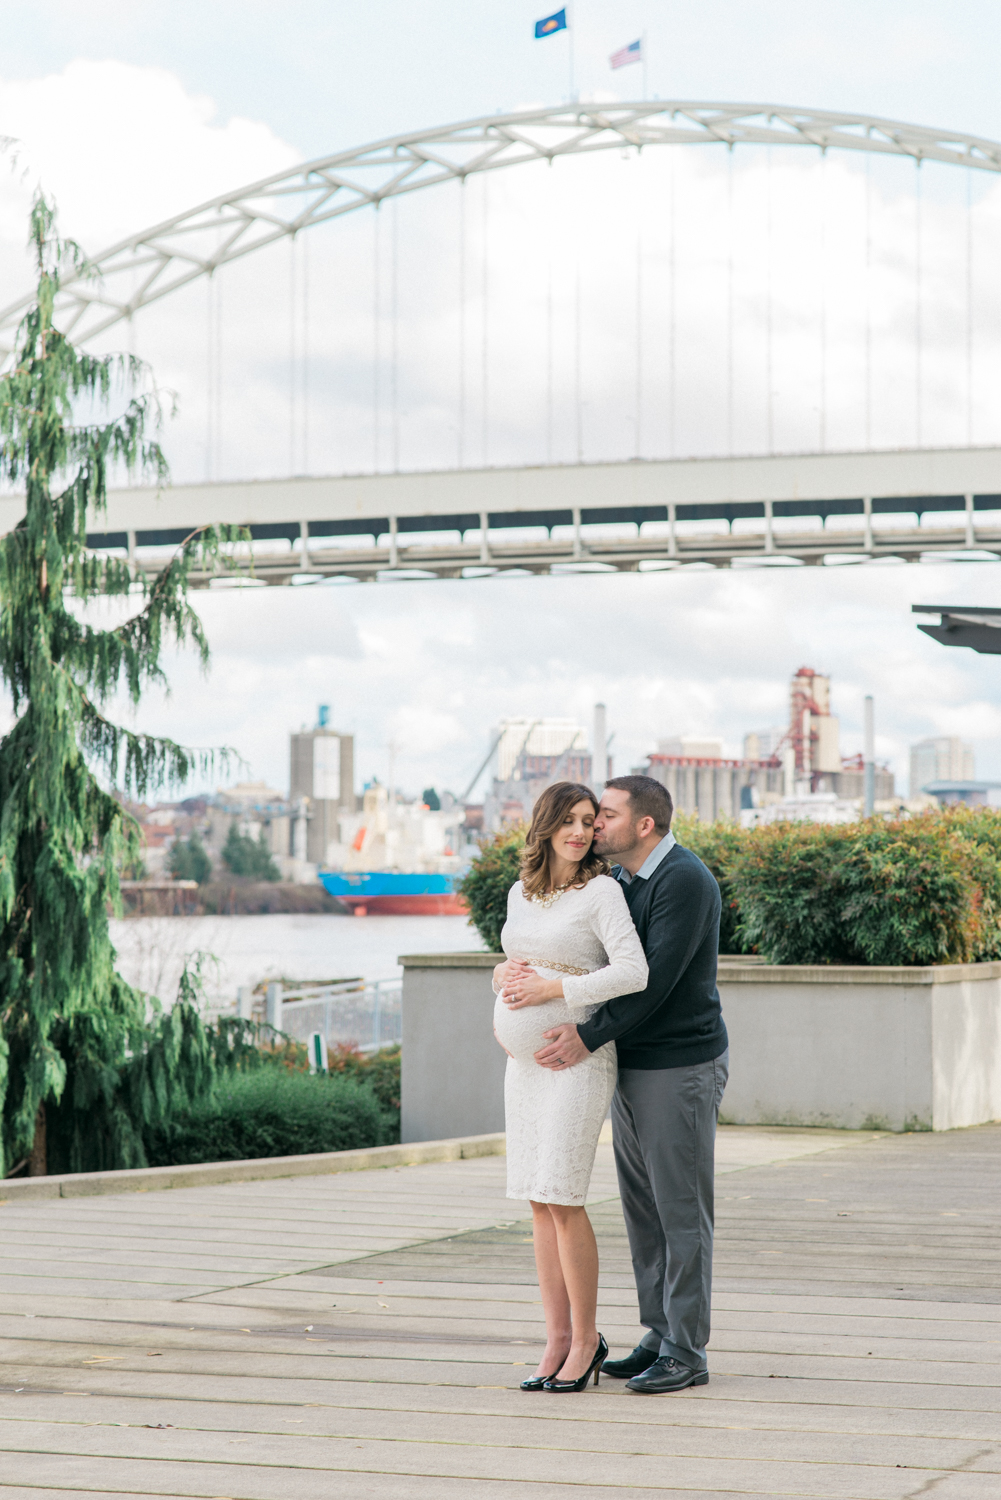 portland-maternity-photographer-fremont-bridge-shelley-marie-photo-9